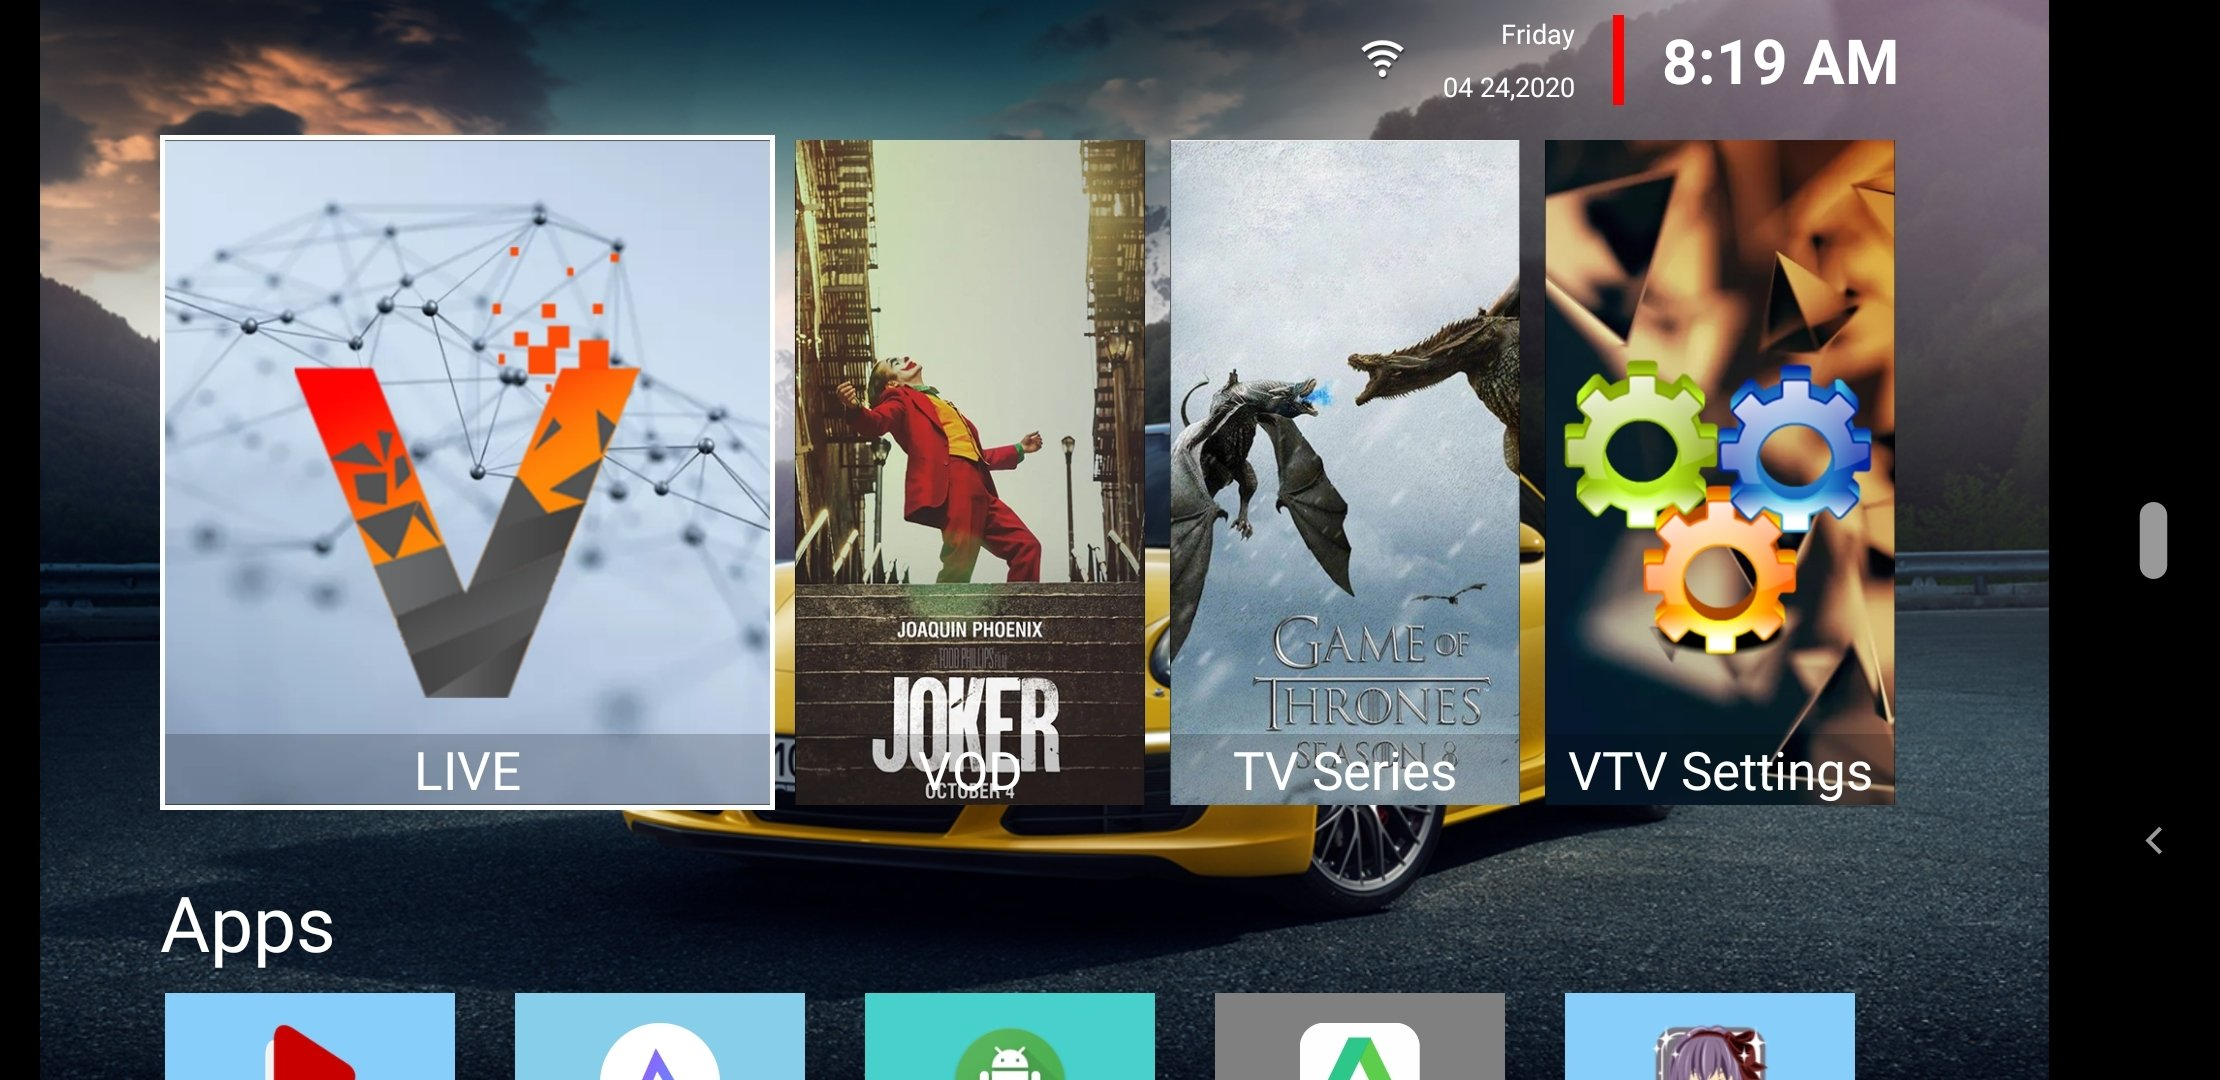 VTV 2.2.5-20191209 - Download for Android APK Free